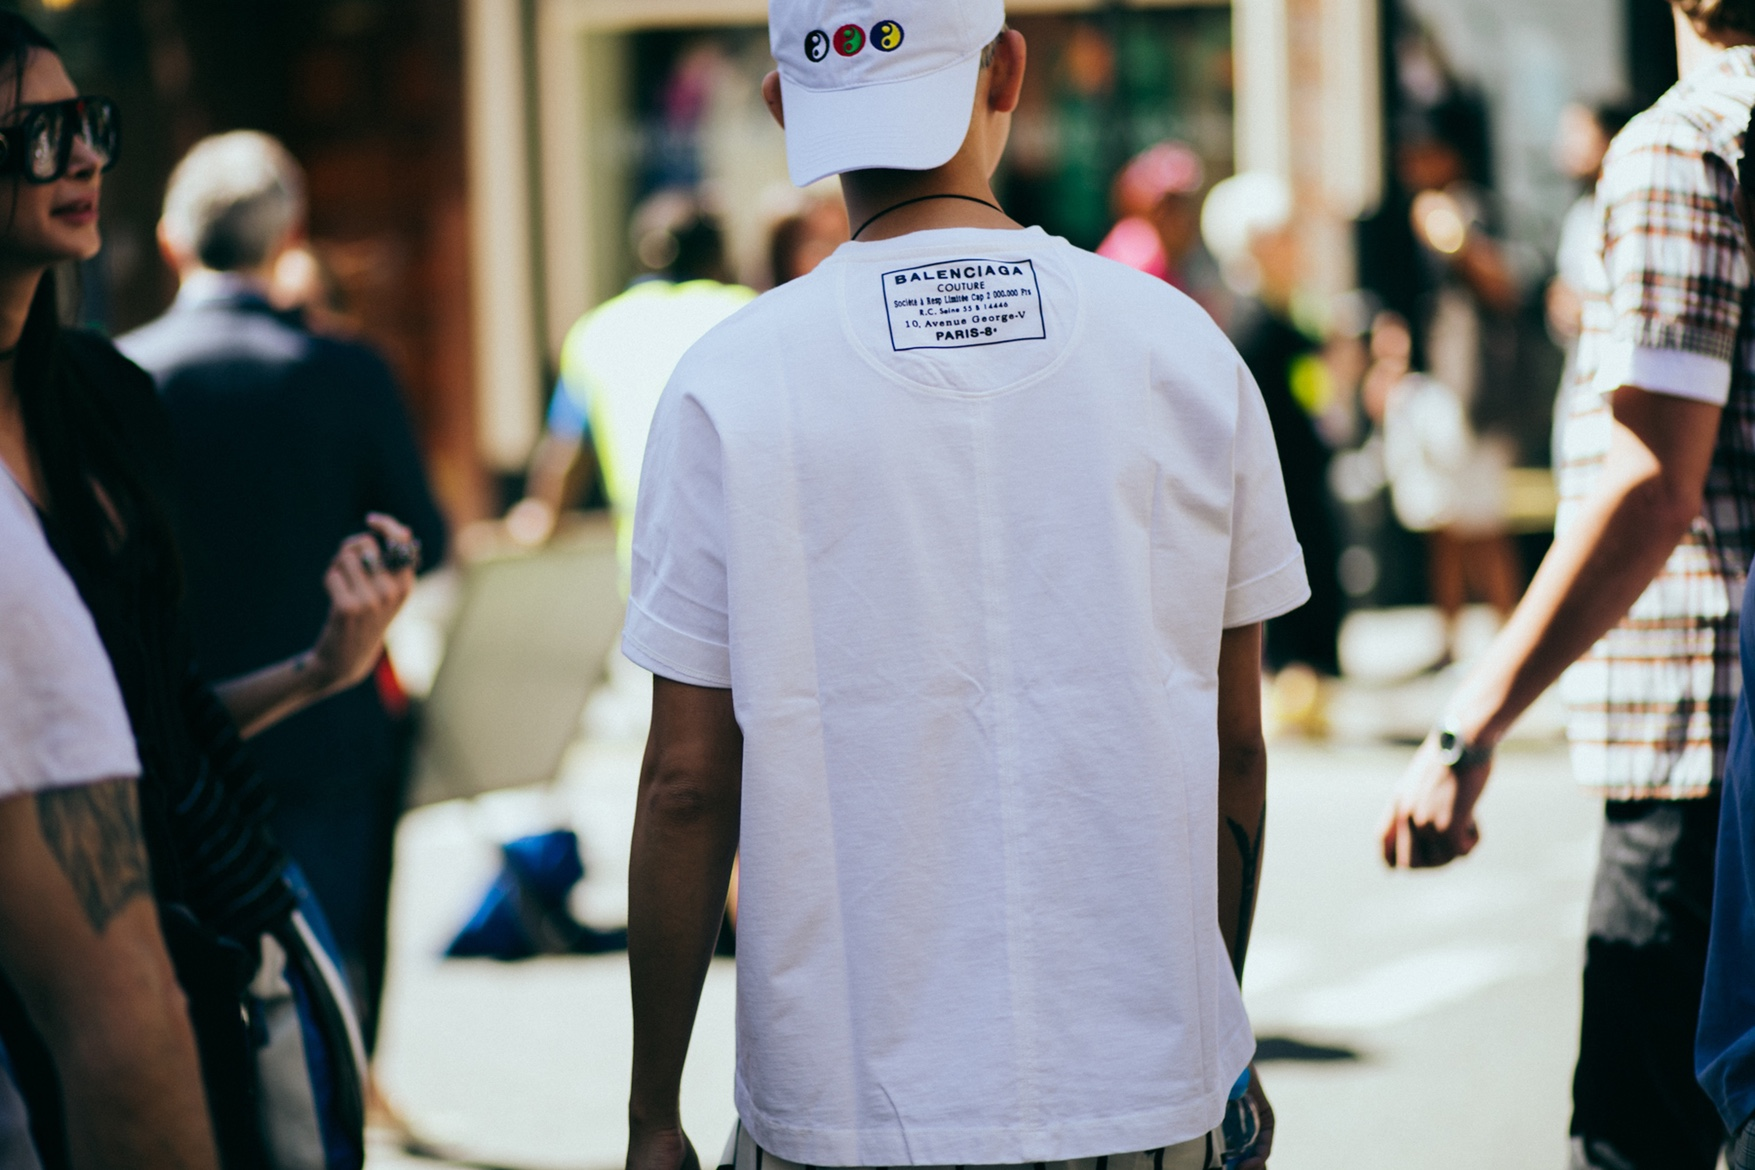 http-%2F%2Fhypebeast.com%2Fimage%2F2017%2F06%2FStreet-Style-London-Fashion-Week-Mens-Spring-9.jpg